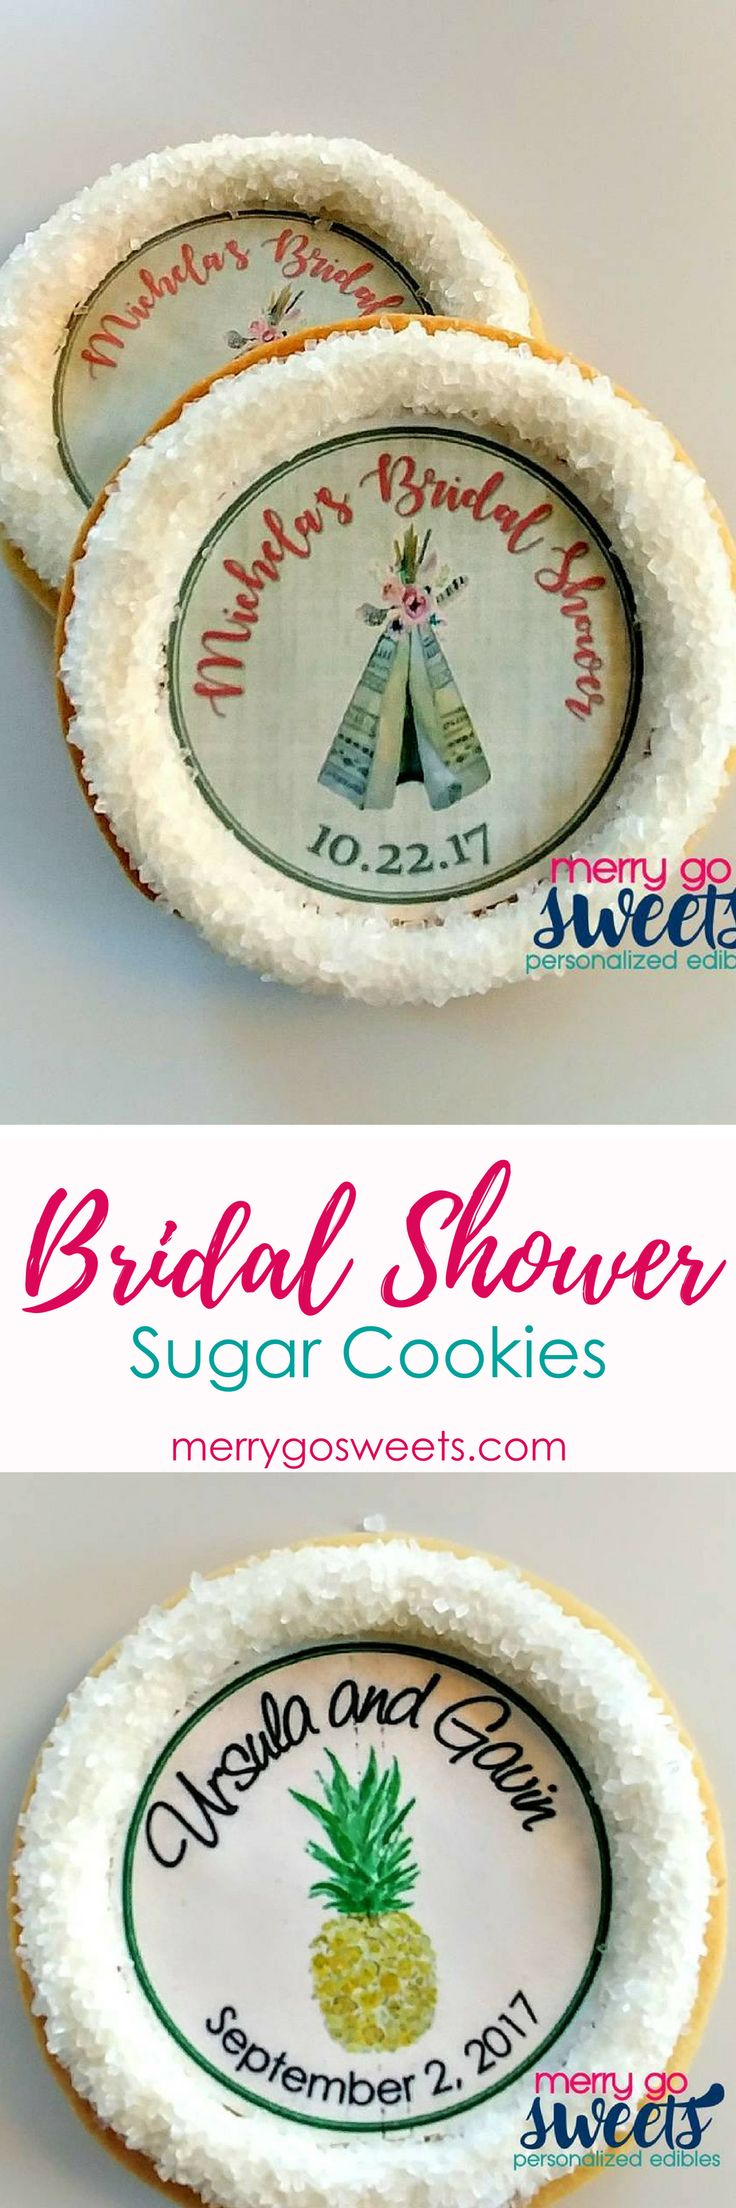 Make your bridal shower extra special with these personalized sugar cookies.  Wedding Cookies | Cookie Decorating | Sweet Treats | Cookies | Party Desserts | Decorations  #sugarcookies #cookiedecorating #sweettreats #bridalshower #weddingdesserts